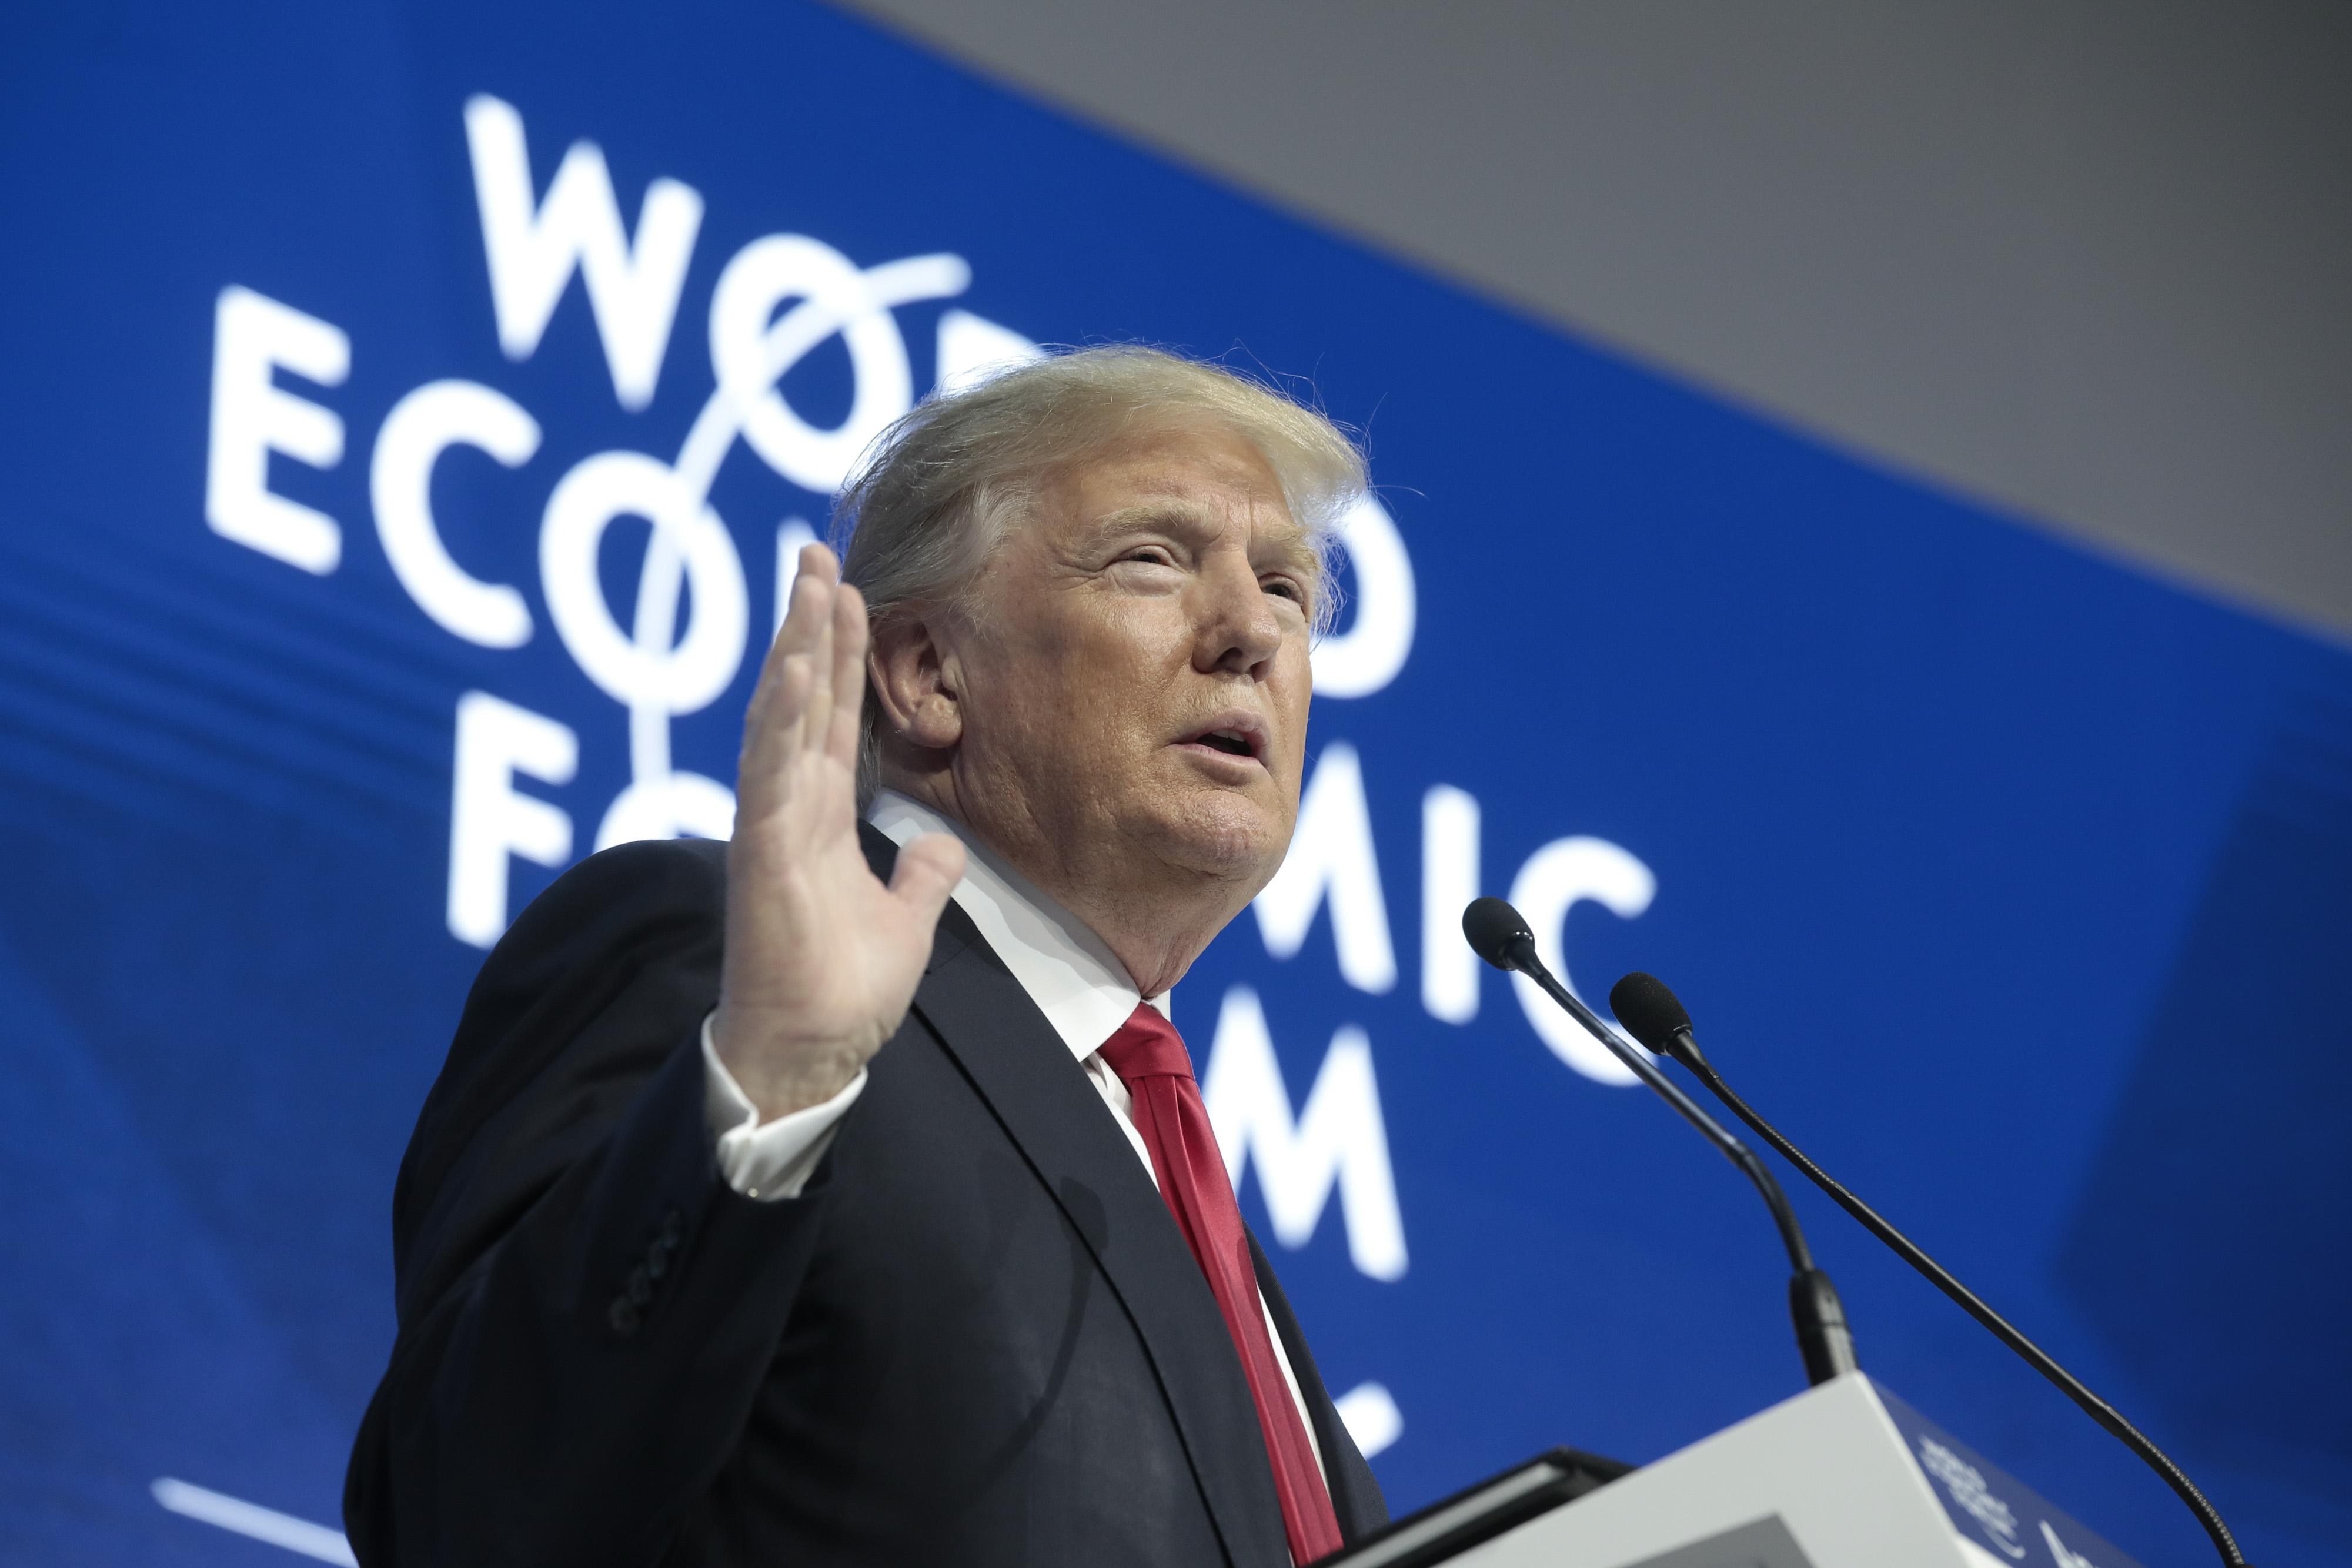 U.S. President Donald Trump delivers a speech during a special address on the closing day of the World Economic Forum (WEF) in Davos, Switzerland, on Friday, Jan. 26, 2018. World leaders, influential executives, bankers and policy makers attend the 48th annual meeting of the World Economic Forum in Davos from Jan. 23 - 26.